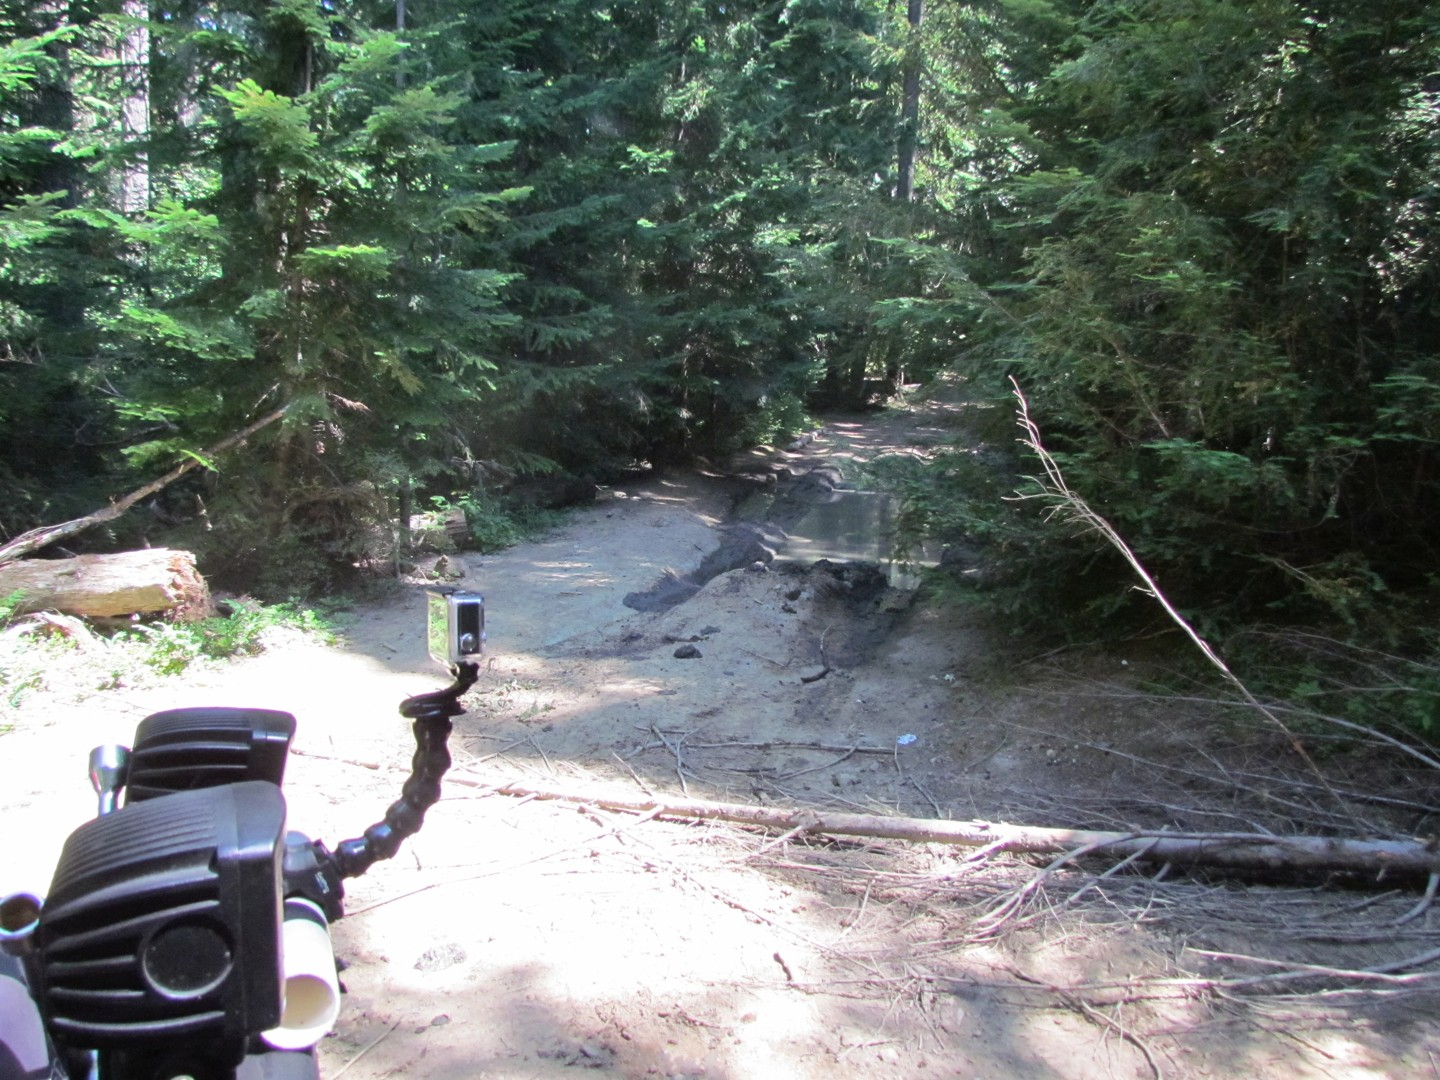 Naches Trail - Waypoint 3: Trail intersection